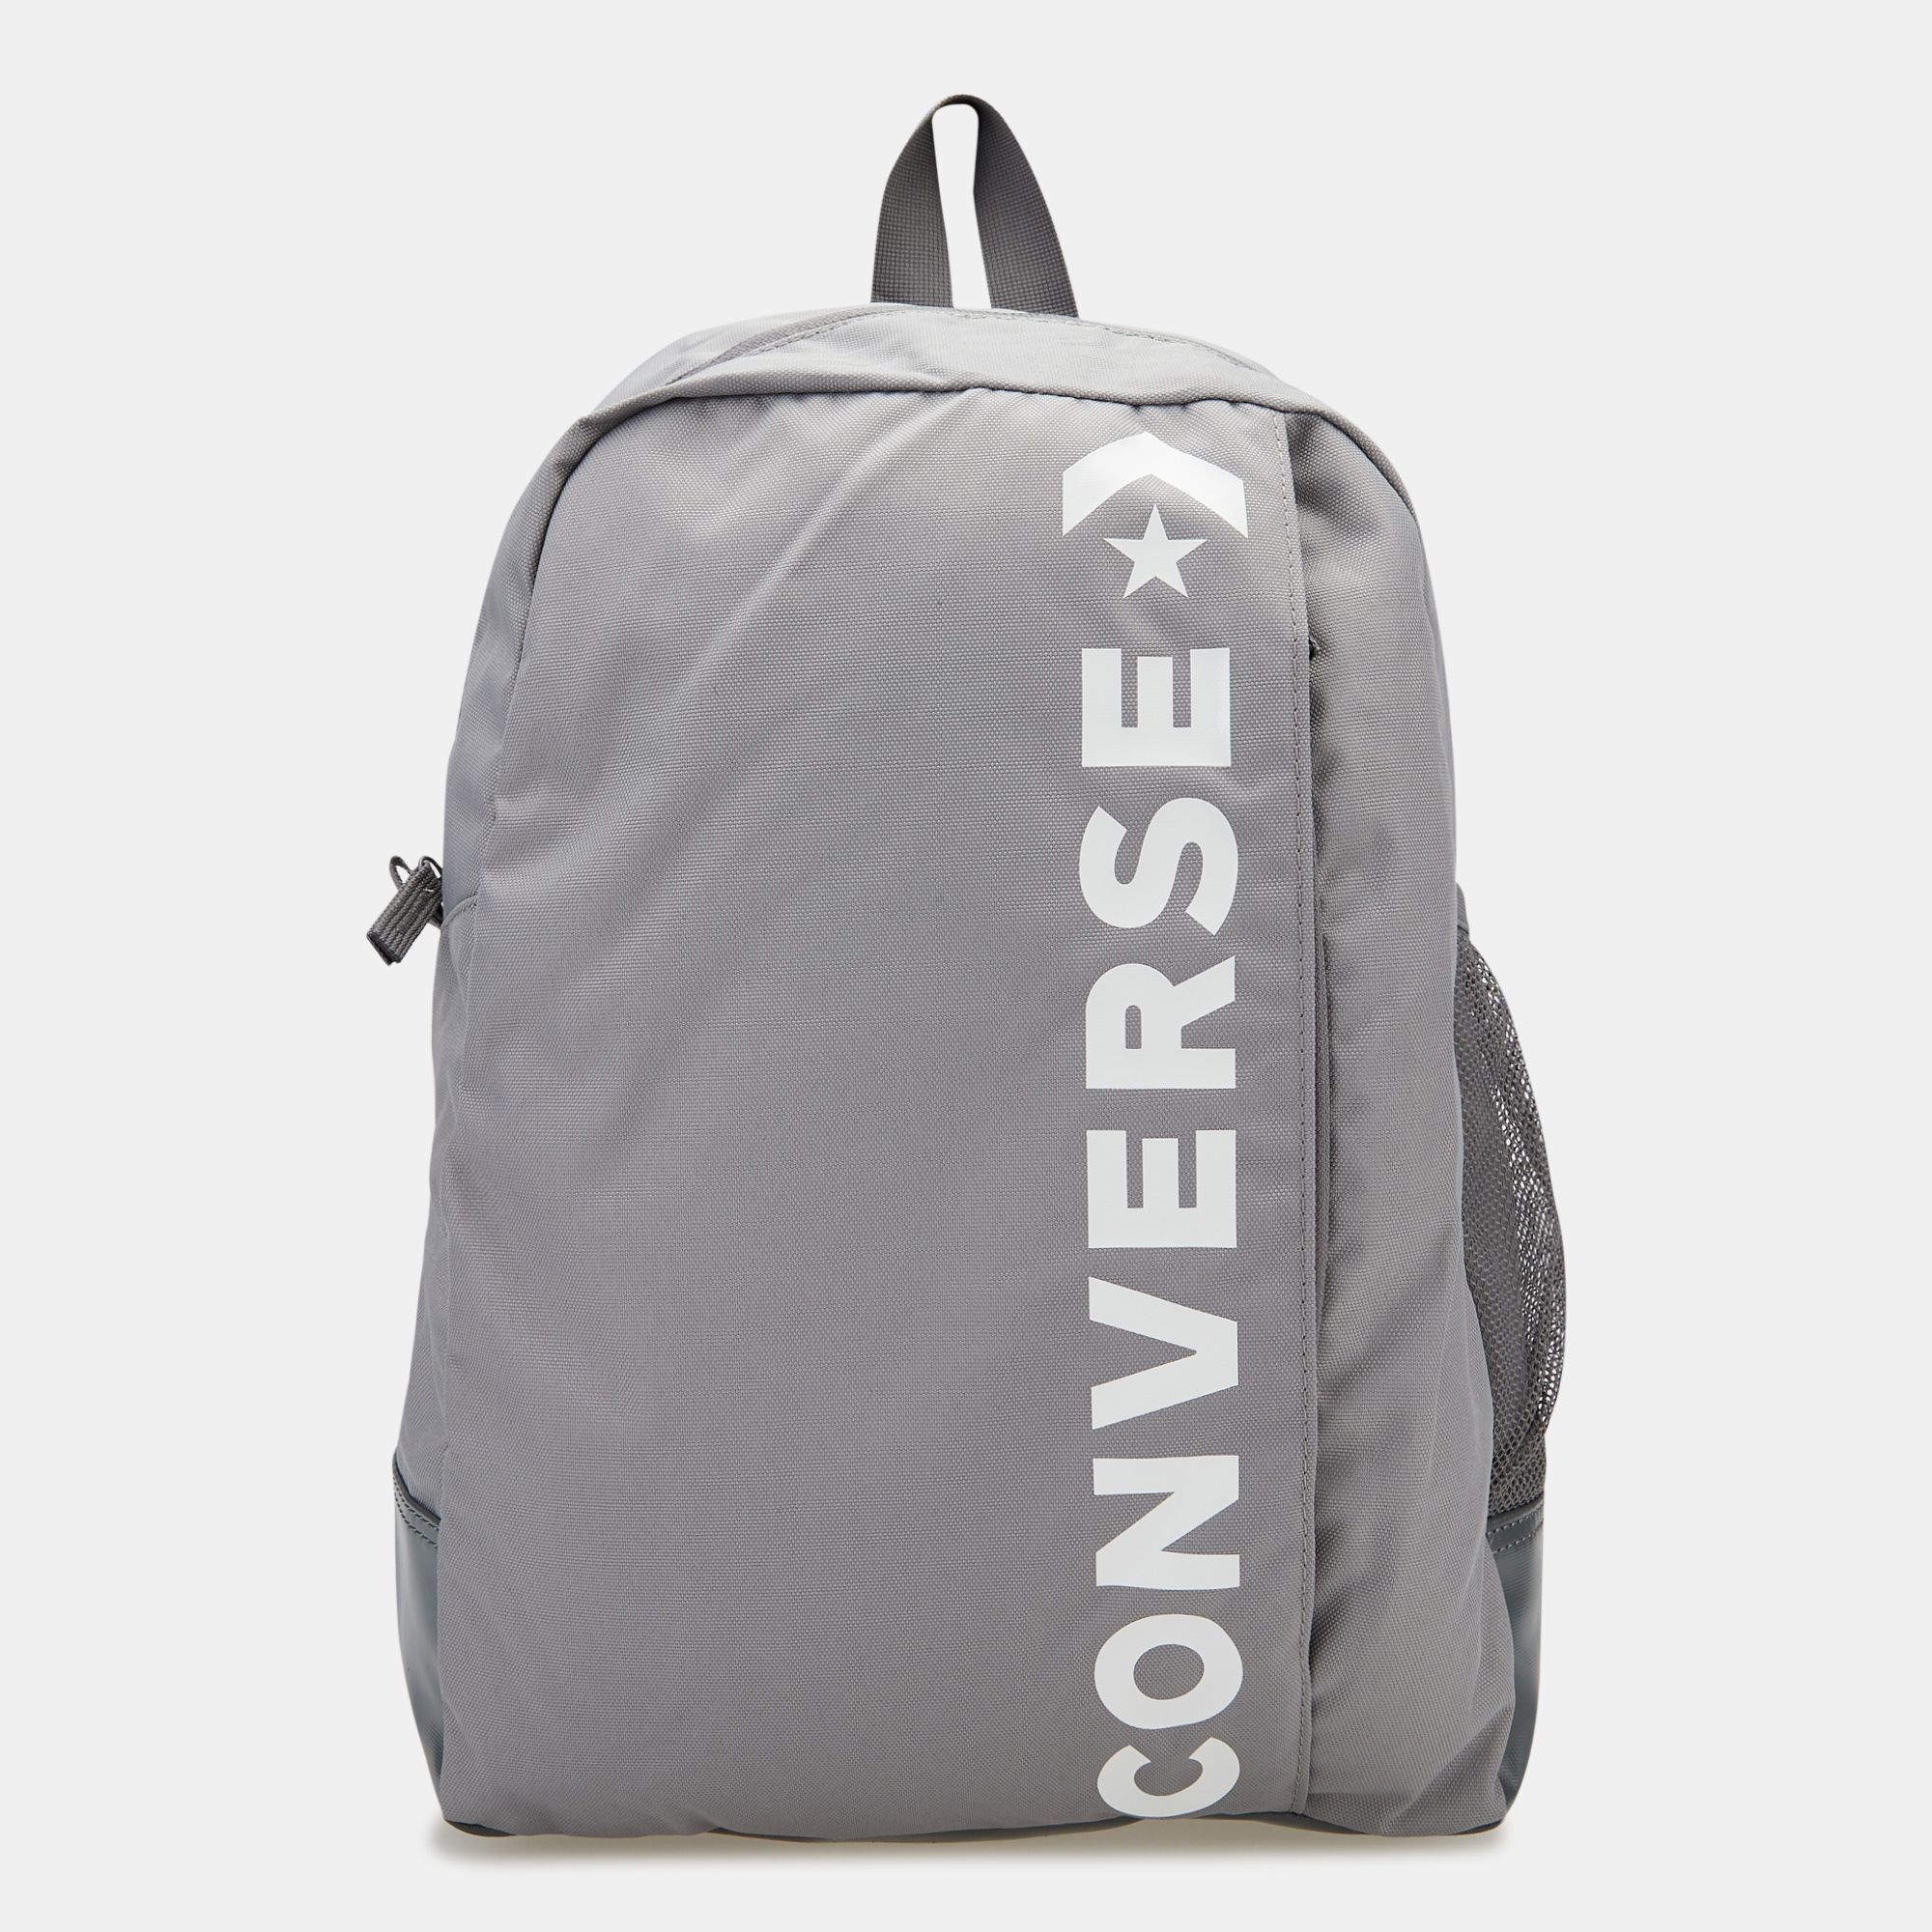 2795d134aaa Converse Speed 2 Backpack   Backpacks and Rucksacks   Bags and ...